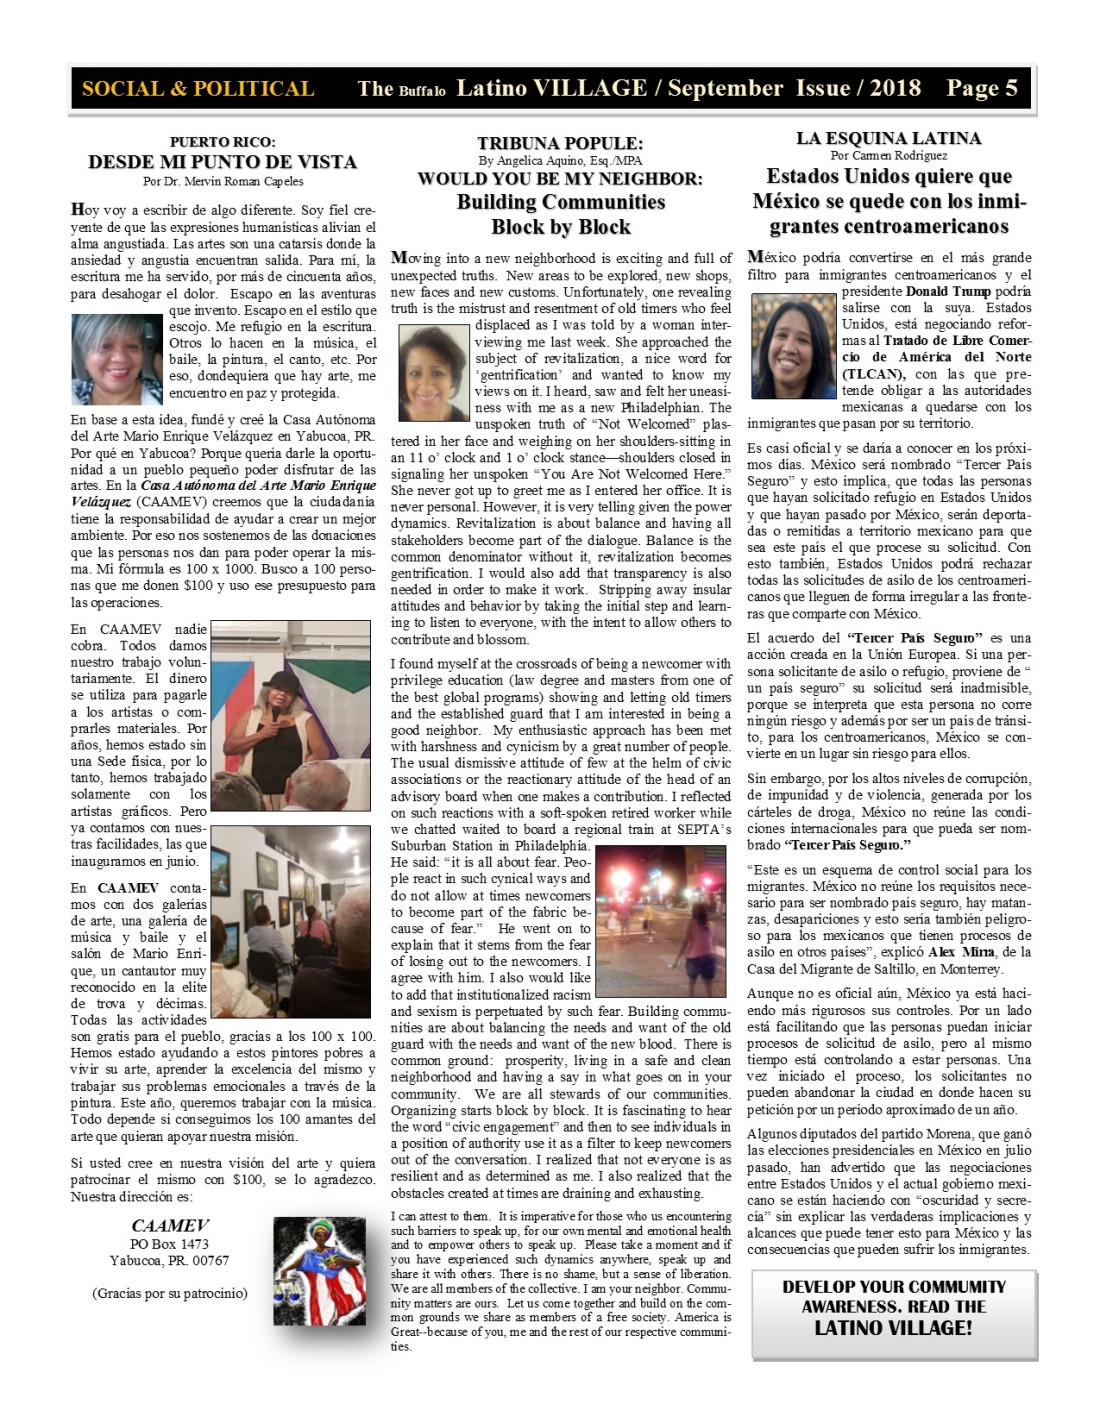 Page 5 Latino Village Newslette September Issue 2018 No. 11